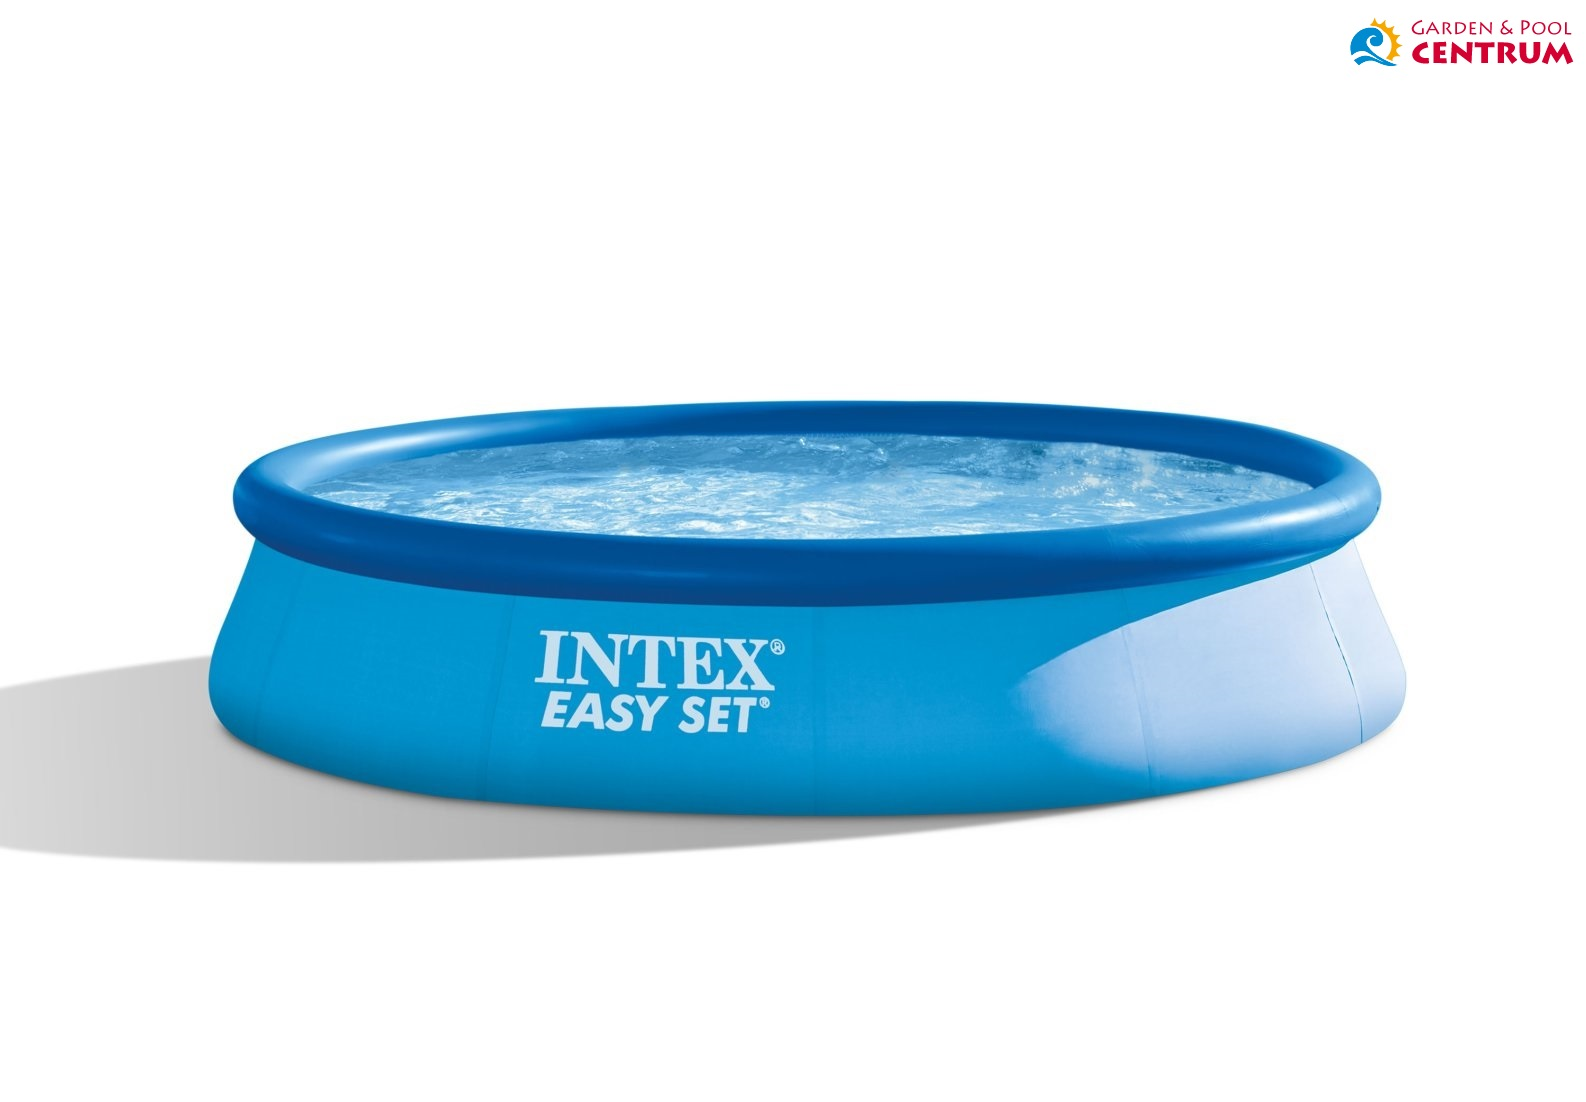 Bazén Intex Easy set 3,96 x 0,84 m